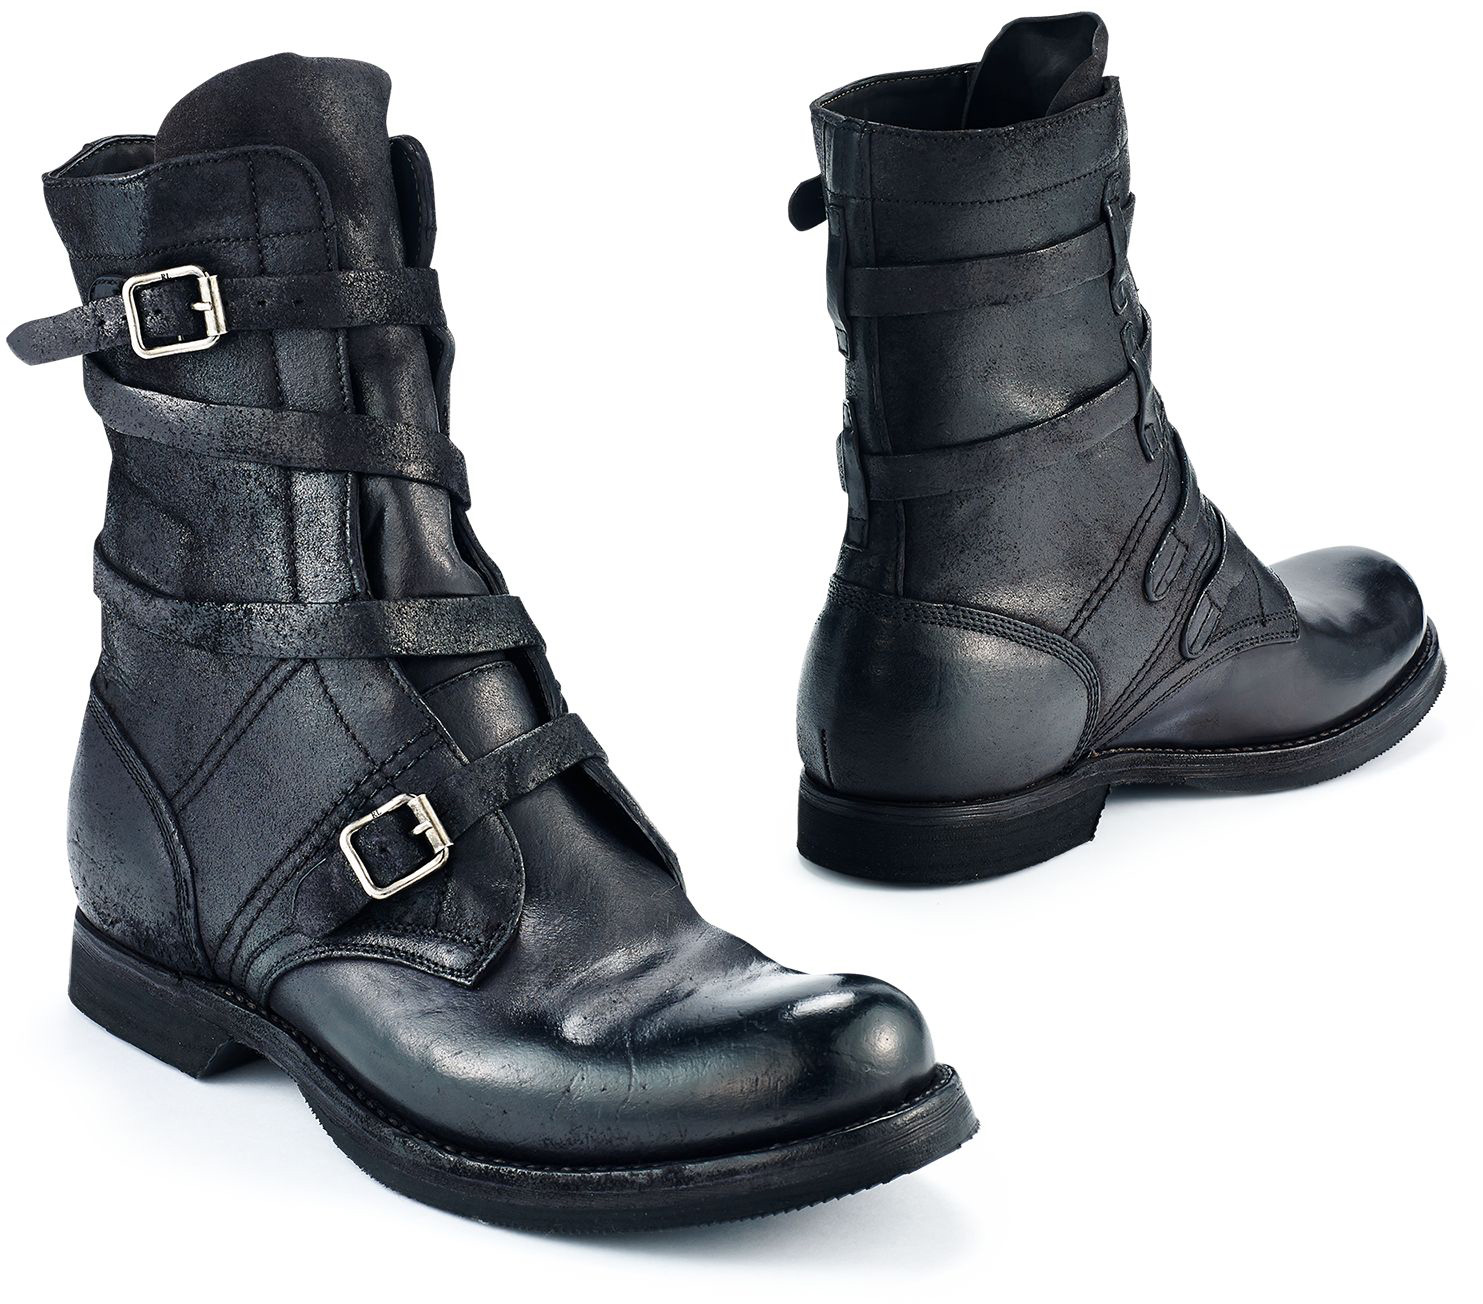 Buckled Leather Boot